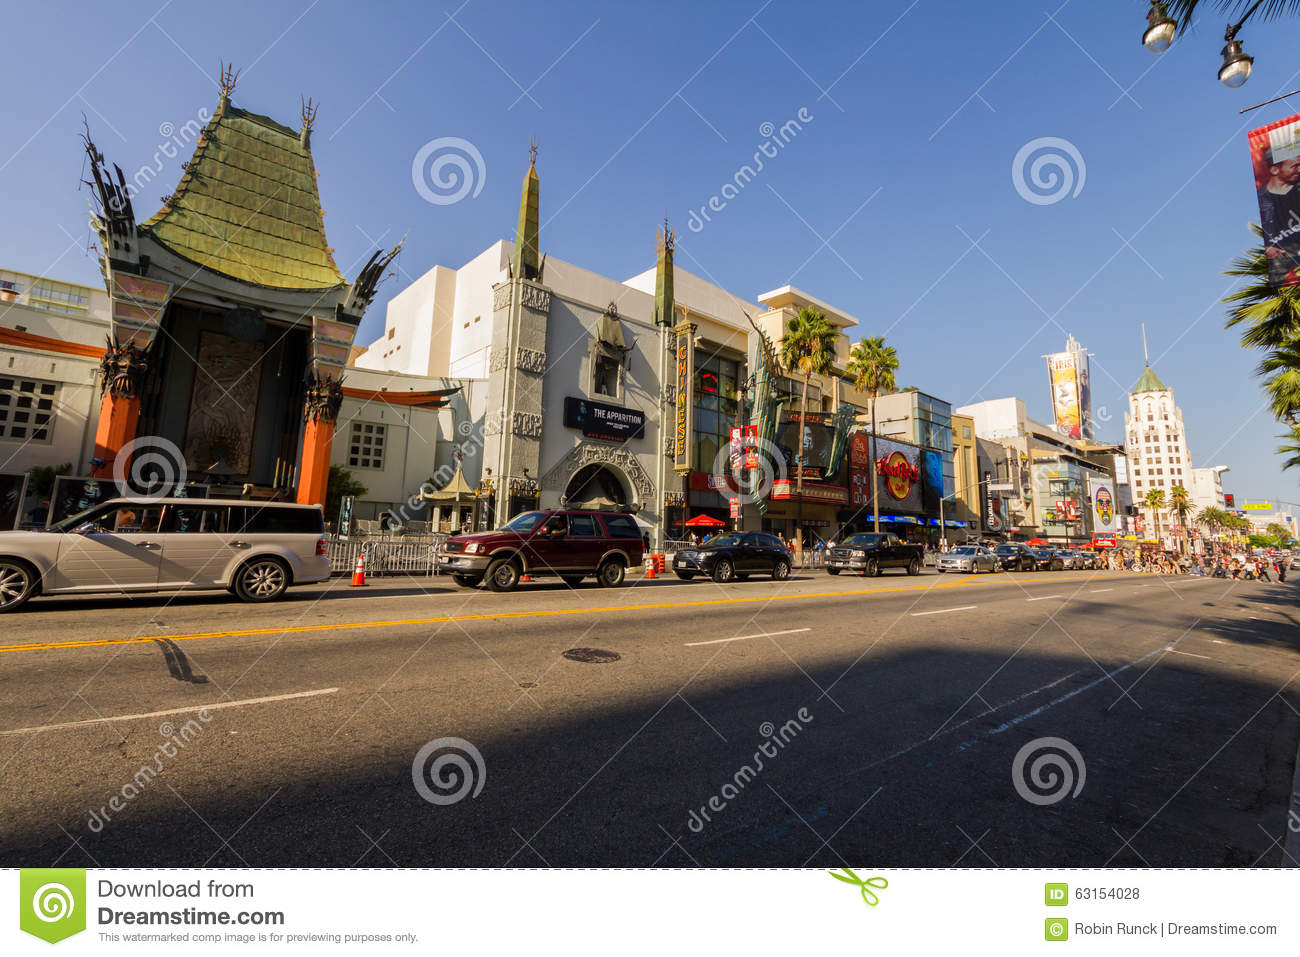 Theaters op de gang van bekendheid, Hollywood, Los Angeles